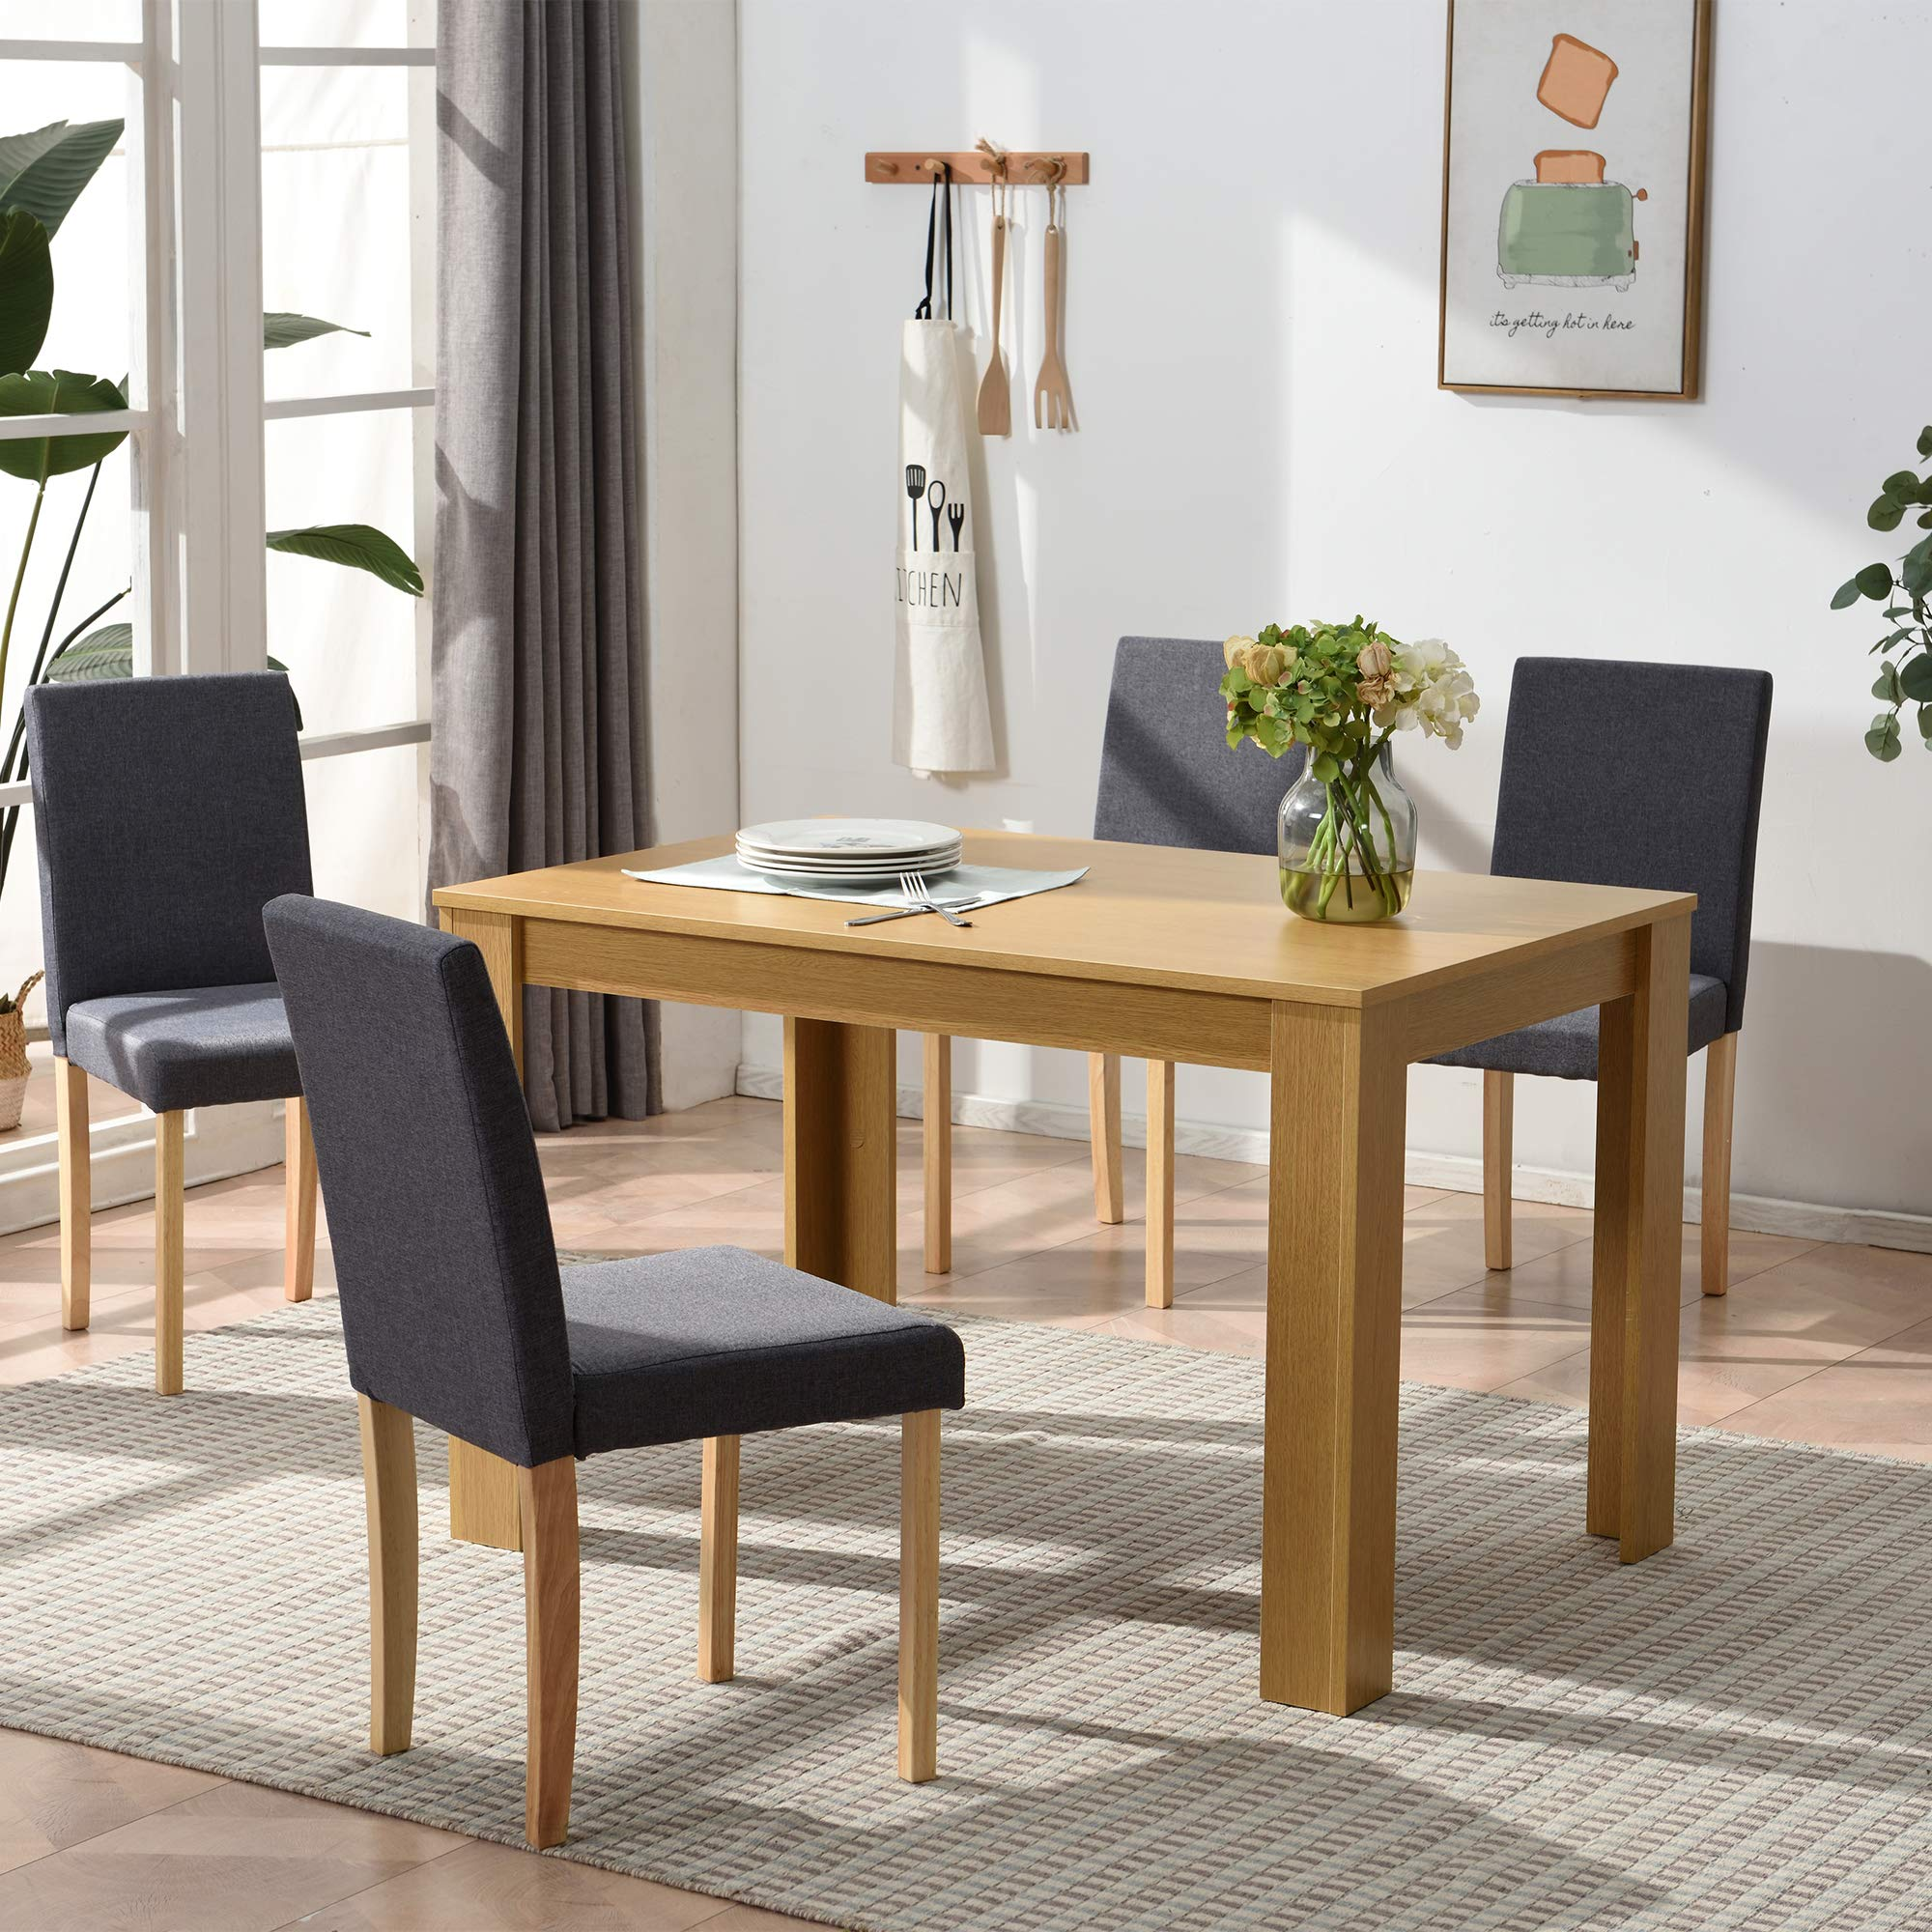 Cherry Tree Furniture 5 Piece Dining Room Set 4 Seater Dining Table With 4 Chairs Oak Colour Table With Grey Fabric Seats Buy Online In Colombia At Desertcart Co Productid 202109383